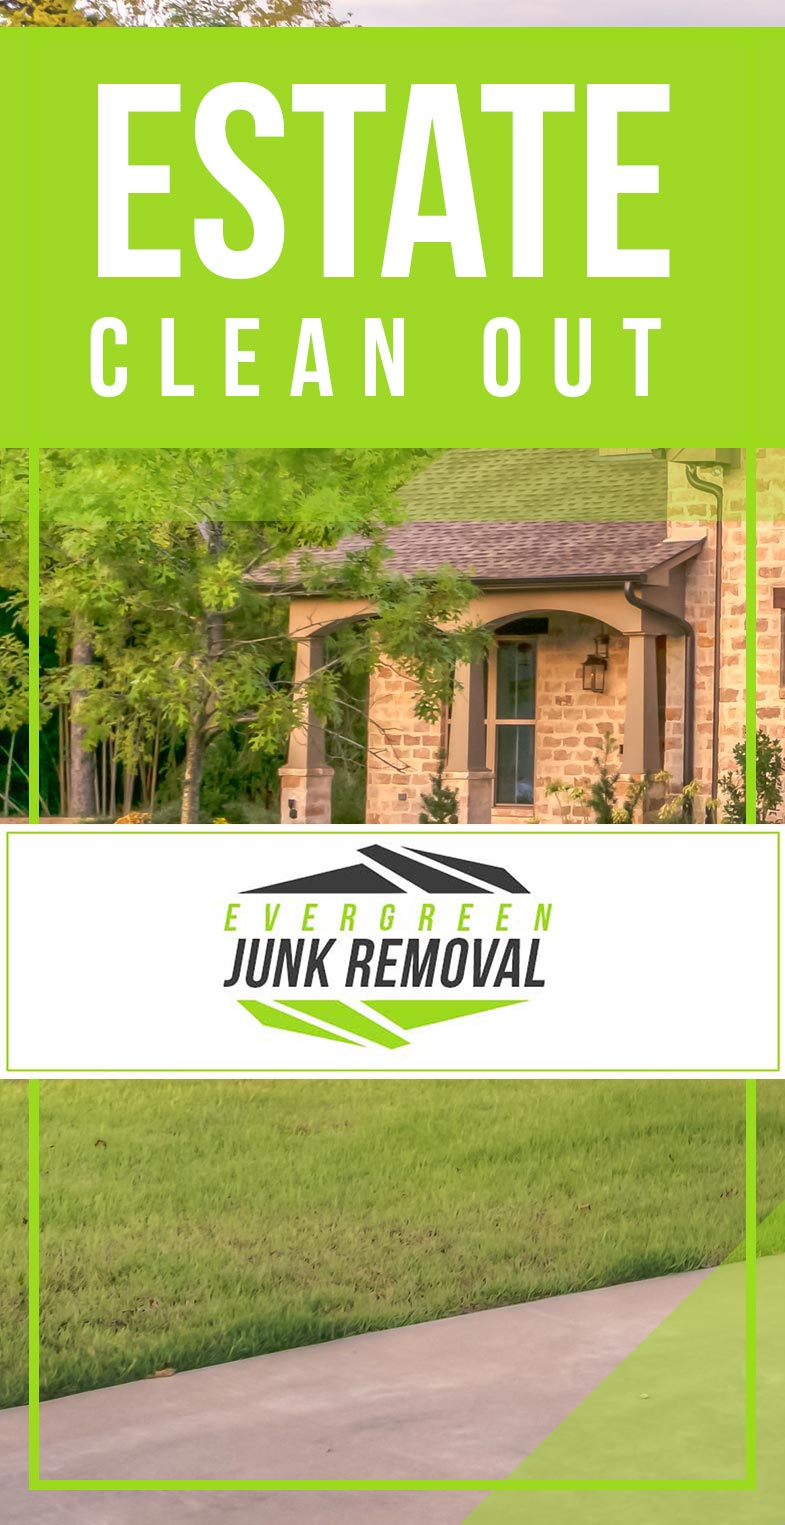 La Porte Property Clean Out